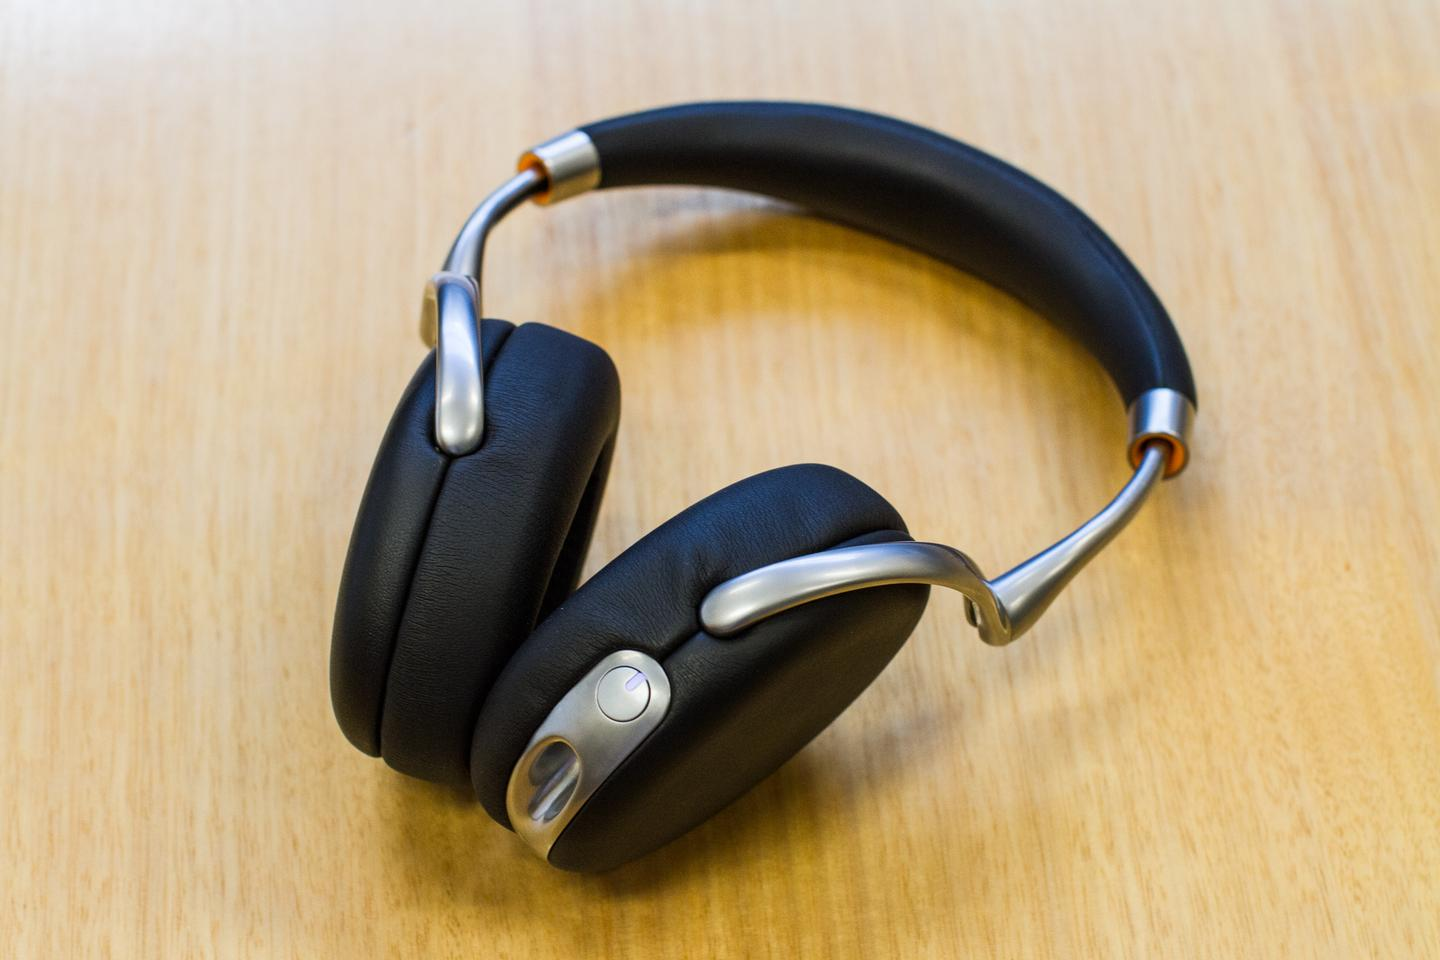 If we were to judge the noise-cancelling ability of the Zik 2.0s by the amount of times our Editor has called me into his office only to be completely ignored, then they'd be getting top marks (Photo: Nick Lavars/Gizmag.com)